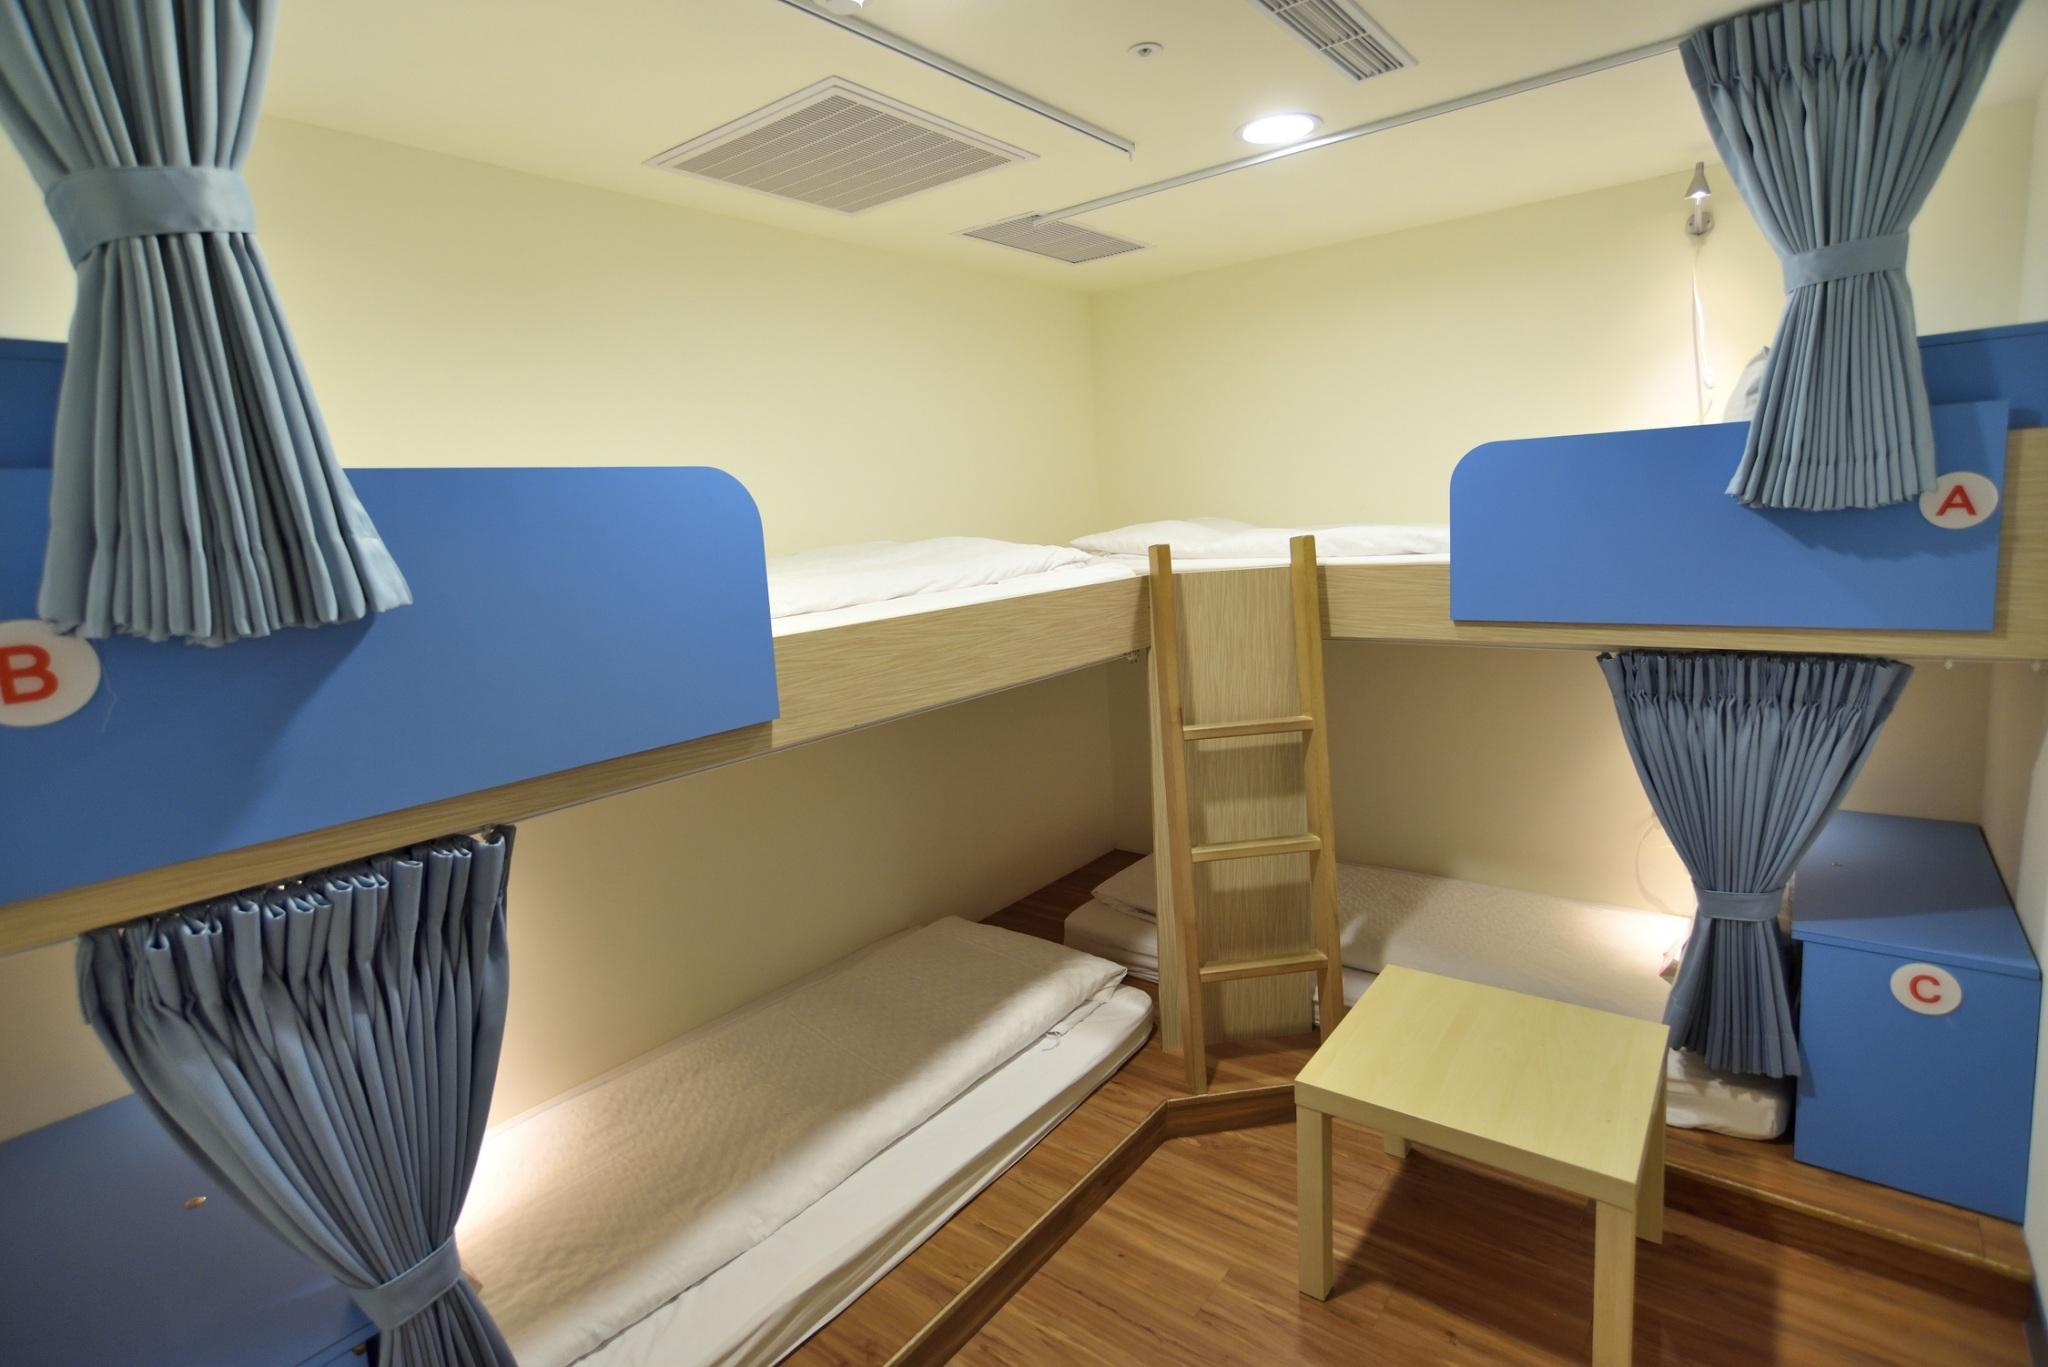 【1張床位】4人宿舍 - 限男性 (1 Person in 4-Bed Dormitory - Male Only)